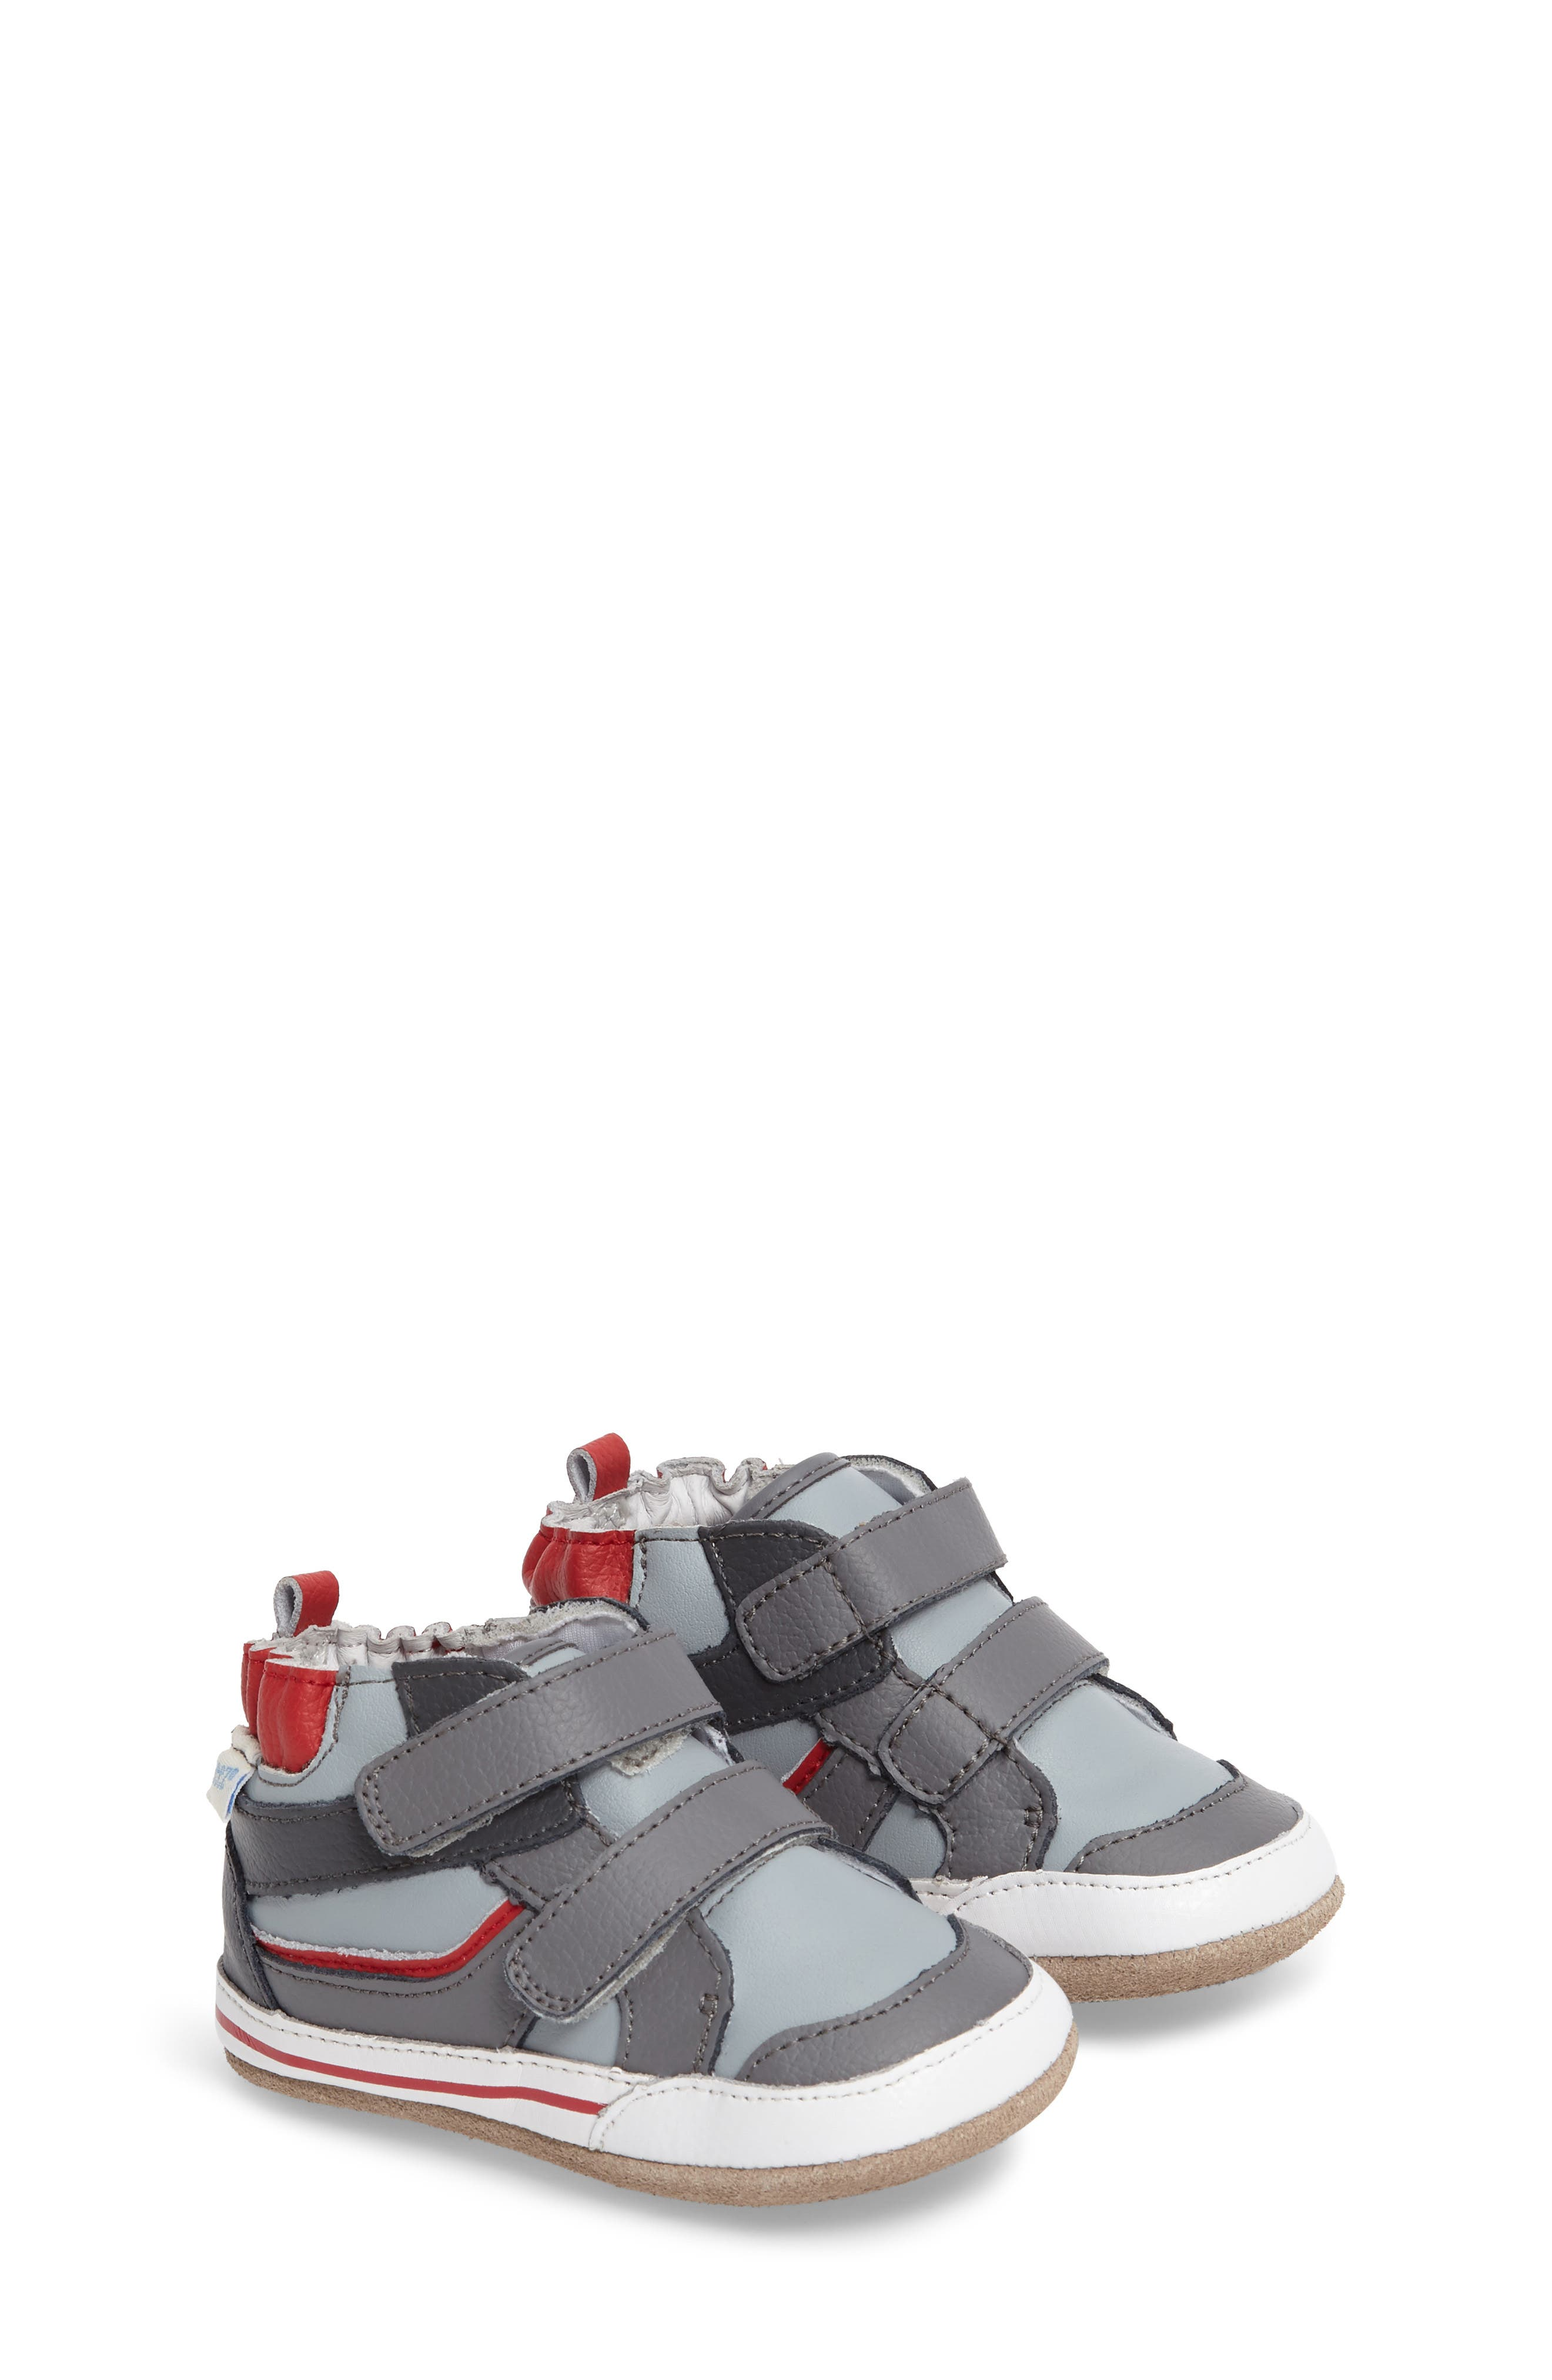 Robeez® Greg Crib Shoe (Baby & Walker)